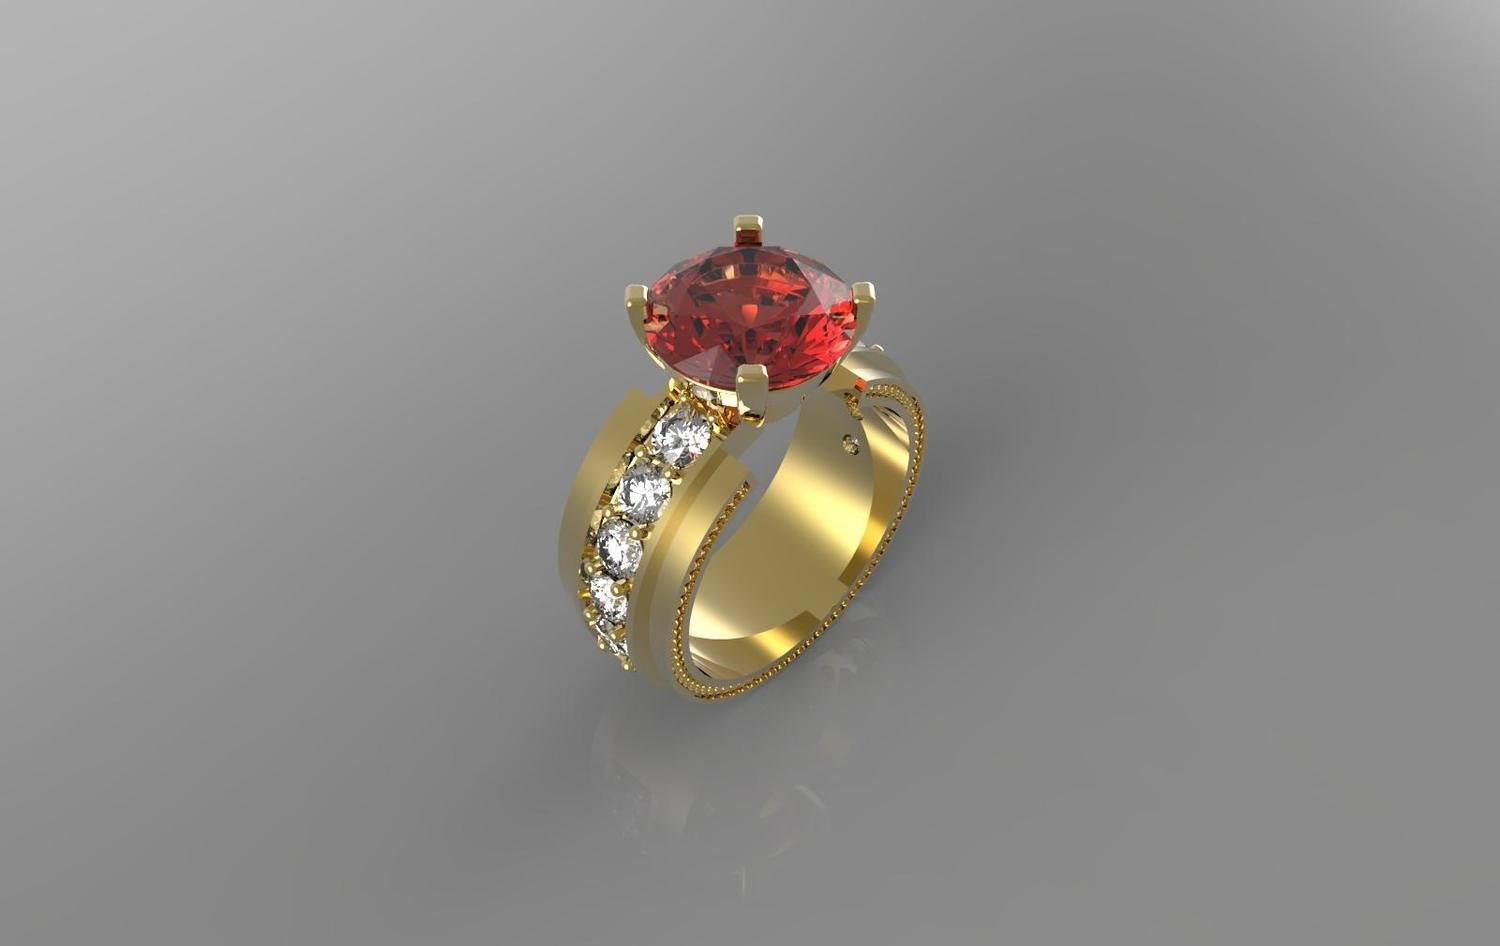 3D CAD Model of Engagement Ring with Ruby and Diamonds